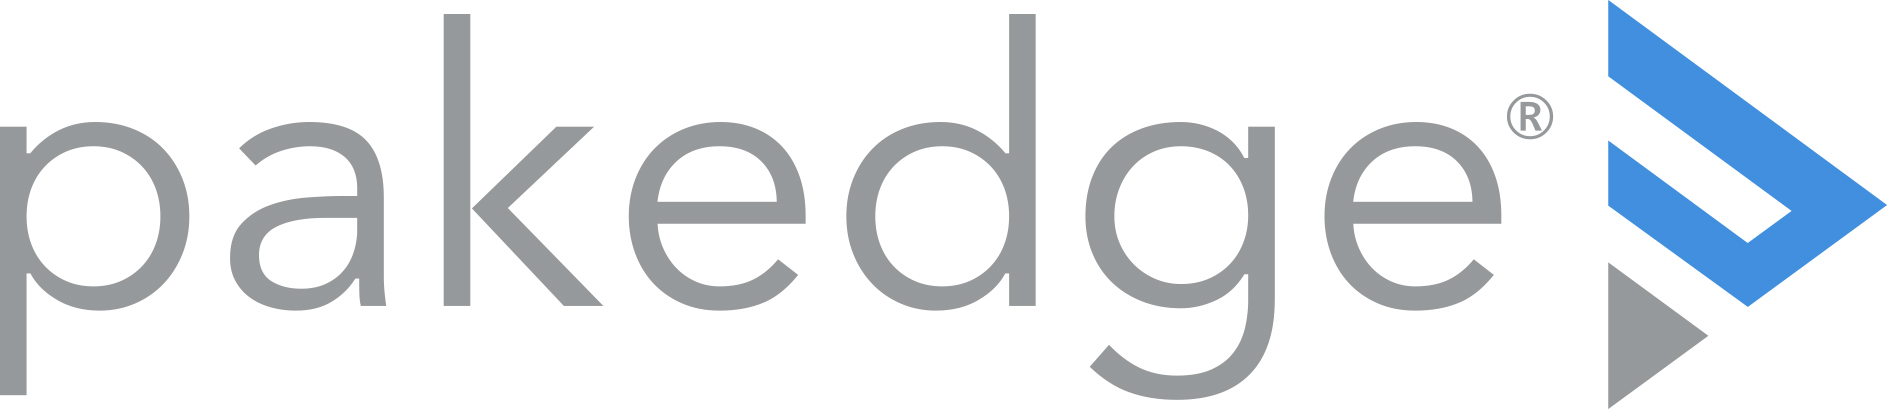 pakedge_logo_color